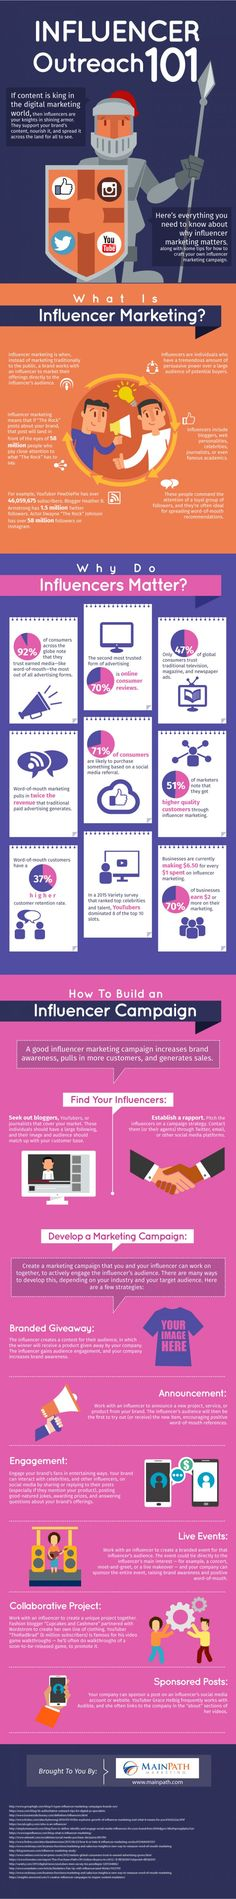 fundraising infographic & data How to Build a Successful Influencer Marketing Campaign . Infographic Description How to Build a Successful Influencer Marketing Services, Marketing Plan, Inbound Marketing, Marketing Tools, Business Marketing, Internet Marketing, Online Marketing, Social Media Marketing, Content Marketing